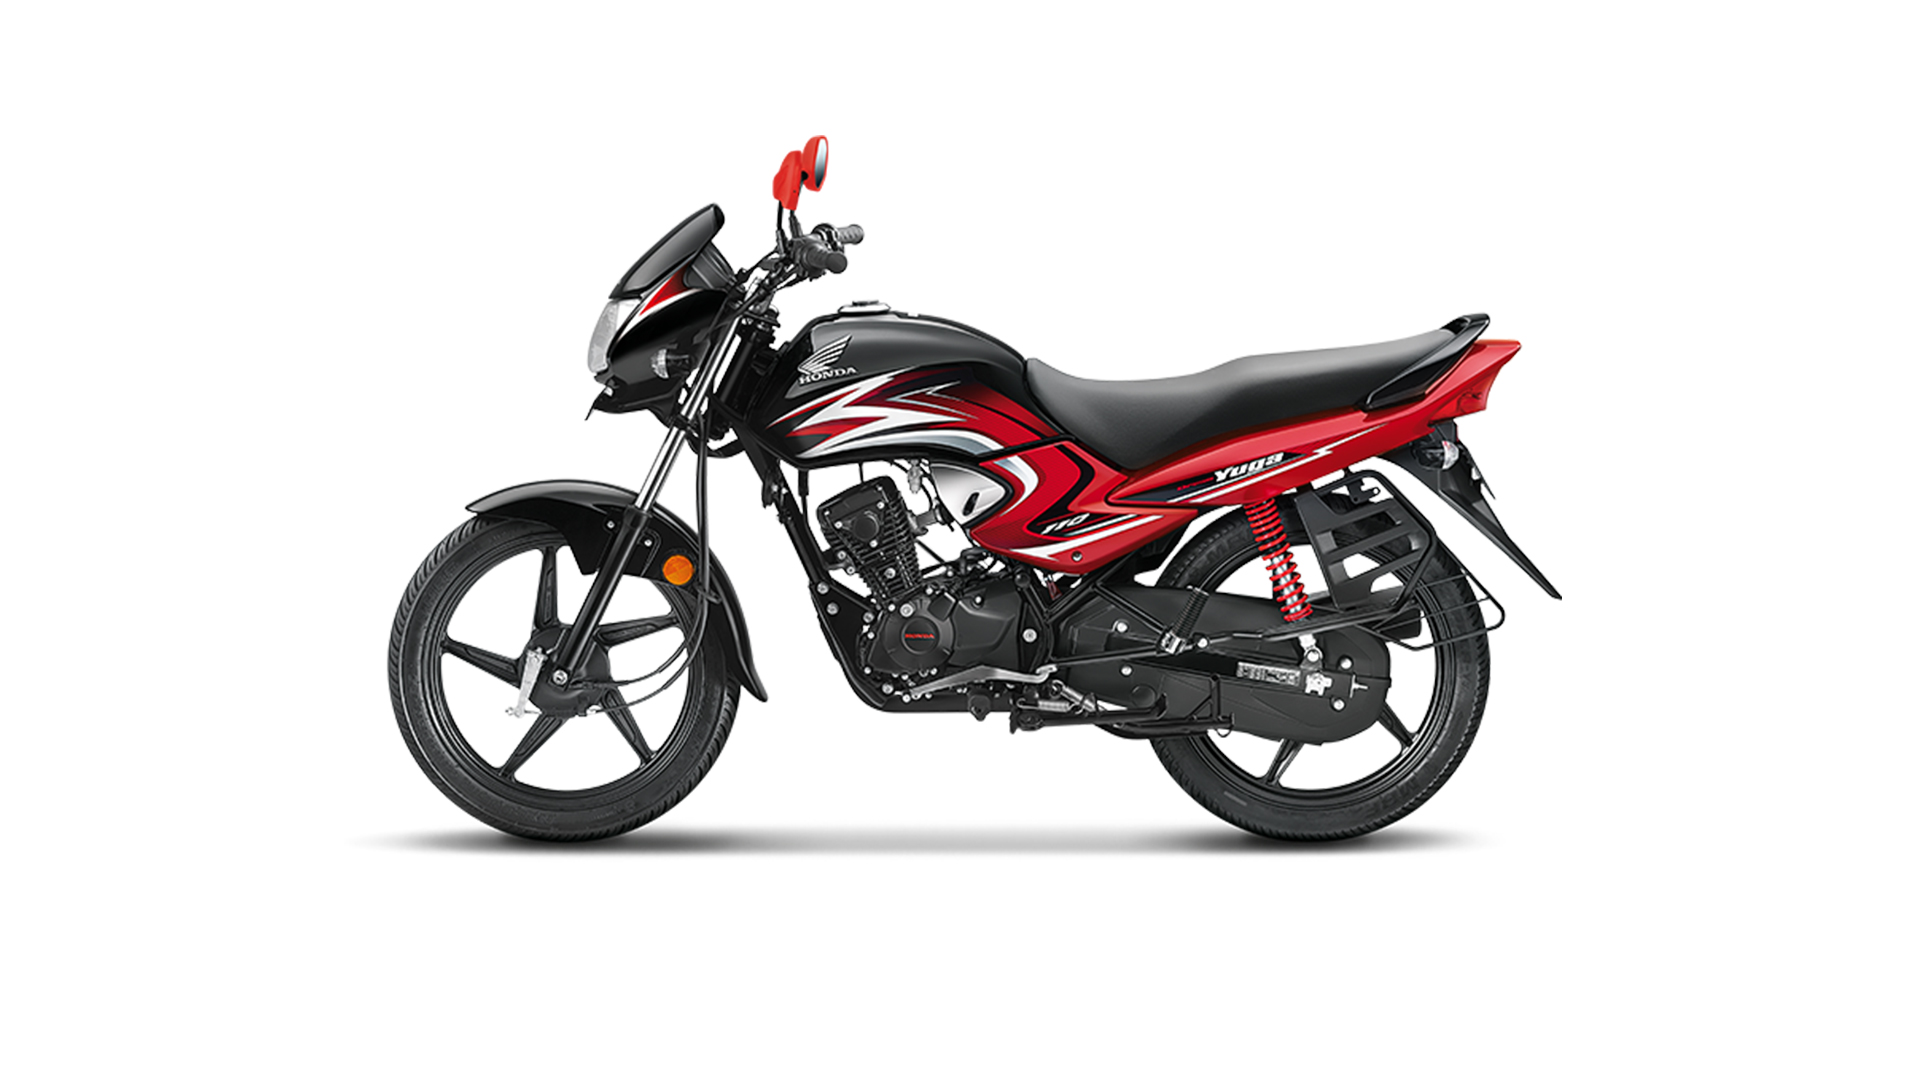 Honda Dream Yuga 2015 Self Drum Alloy Price Mileage Reviews Specification Gallery Overdrive